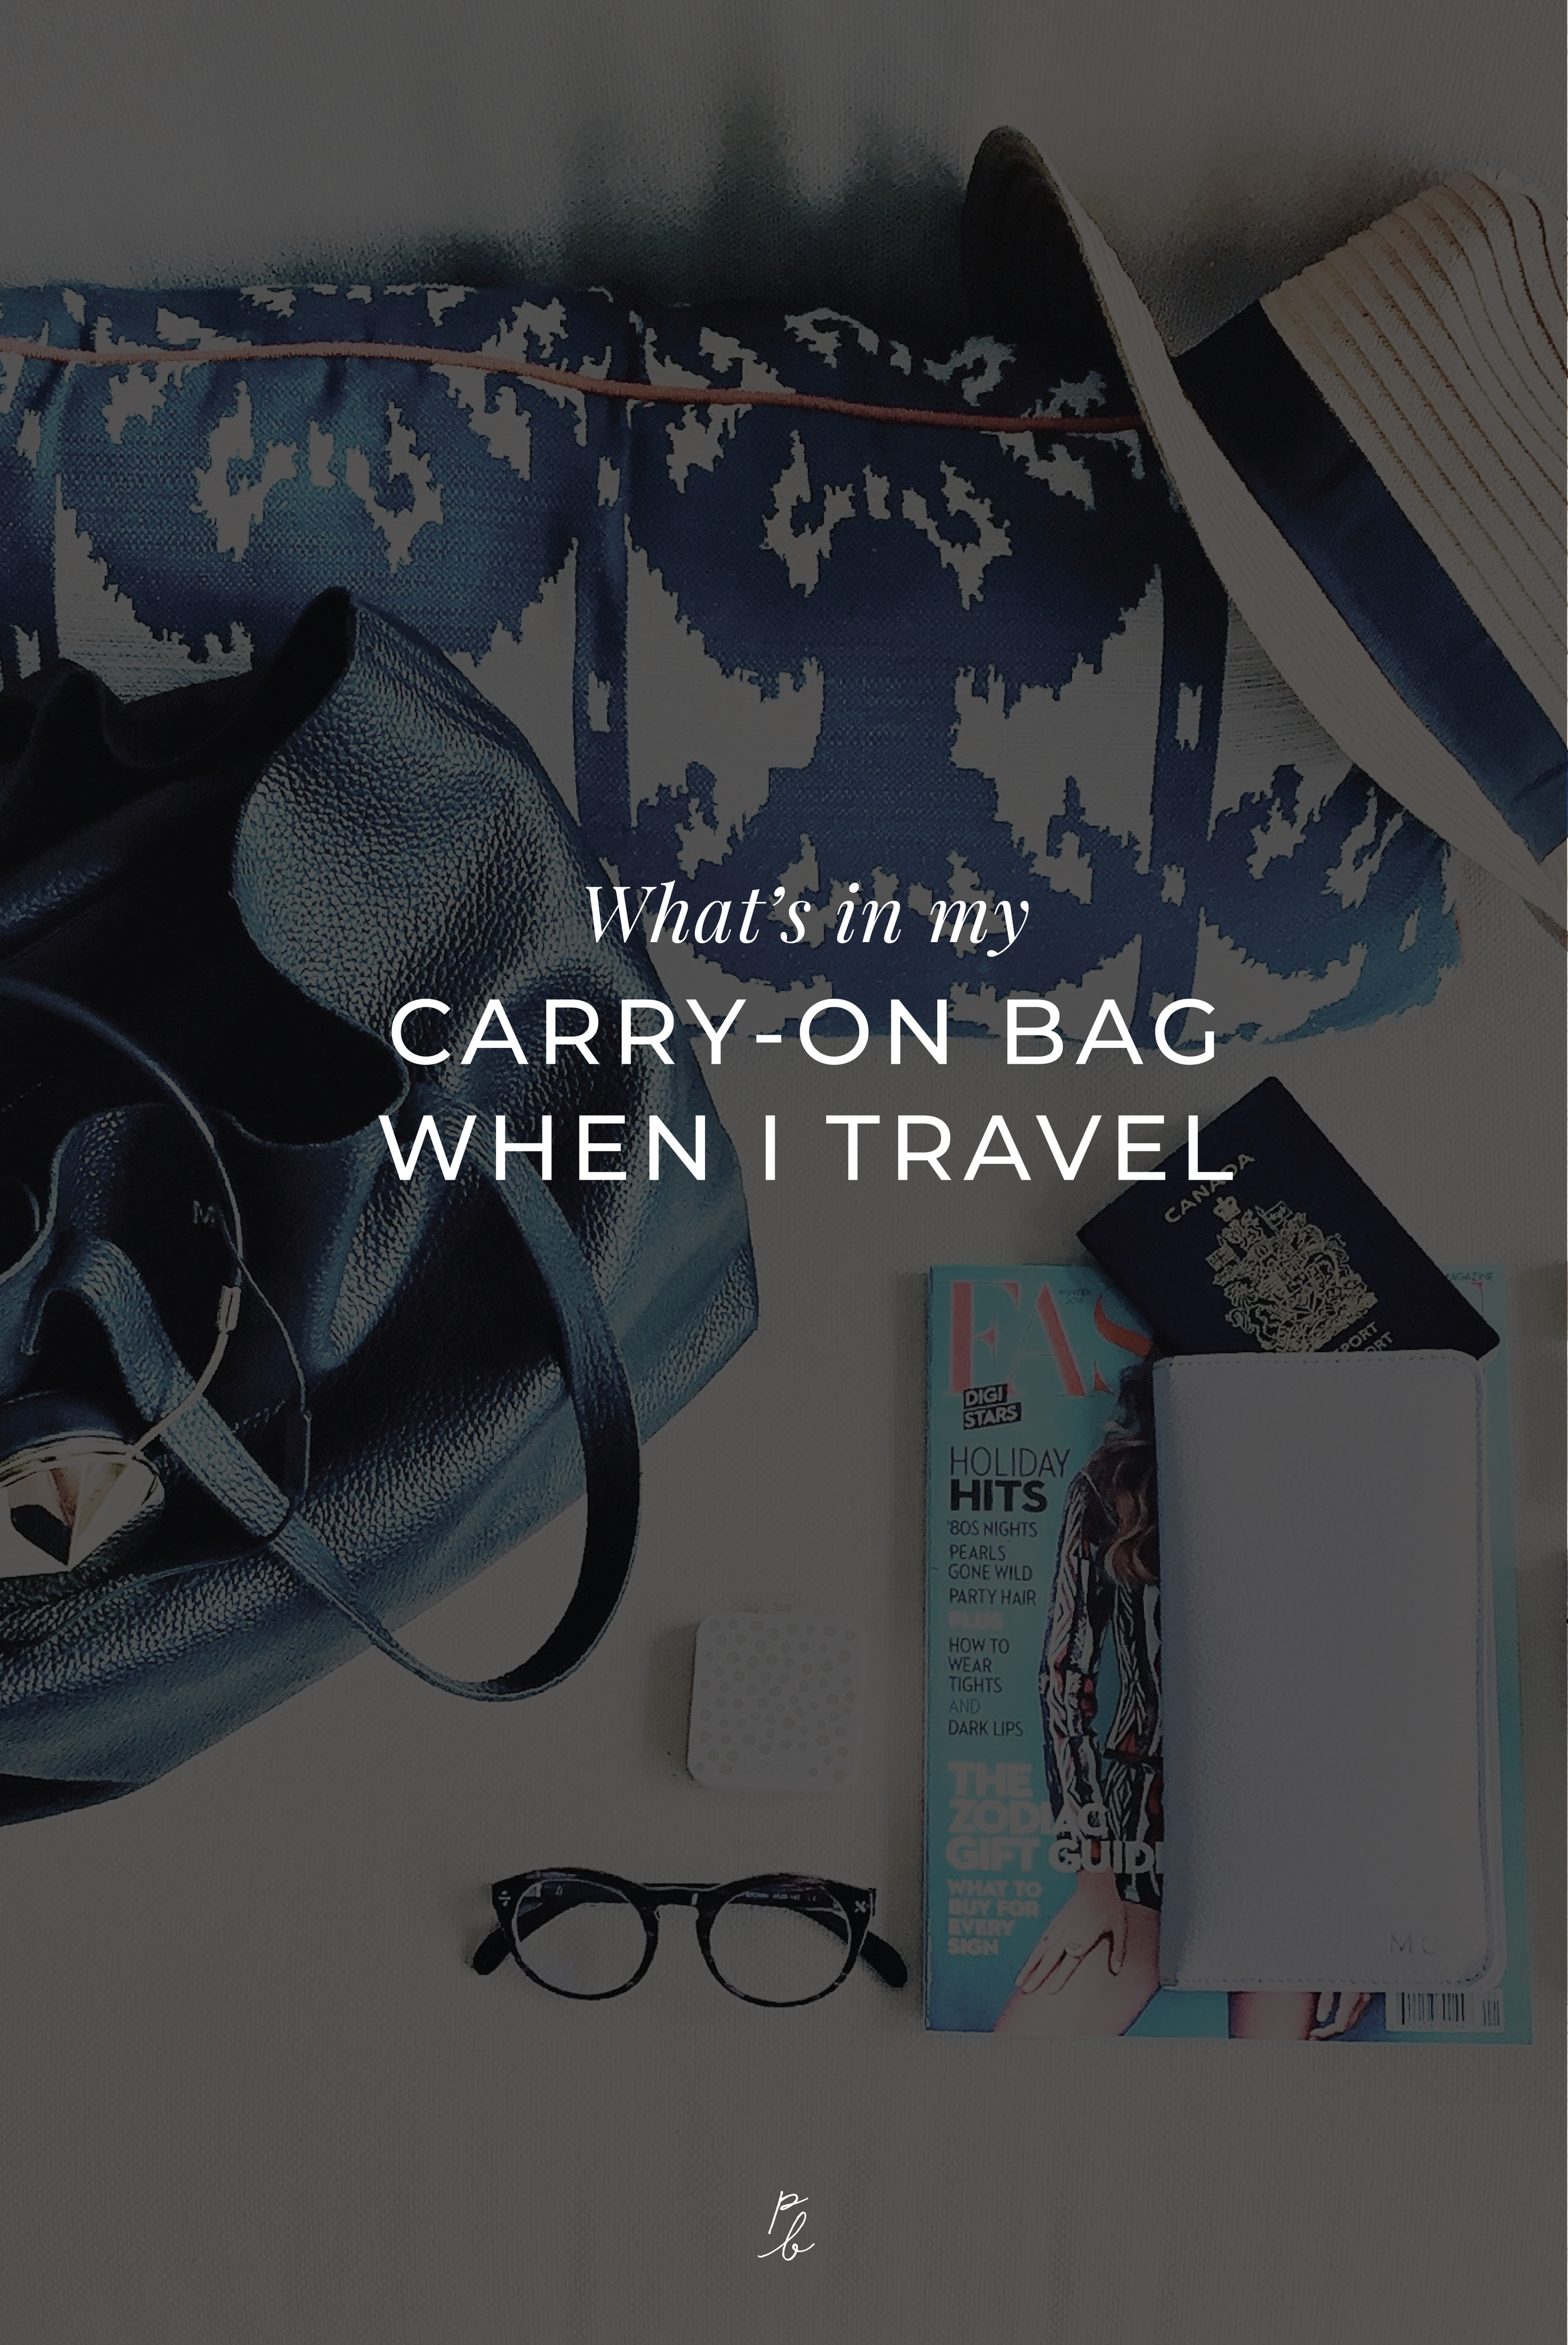 What's in my carry on bag when I travel-02.png